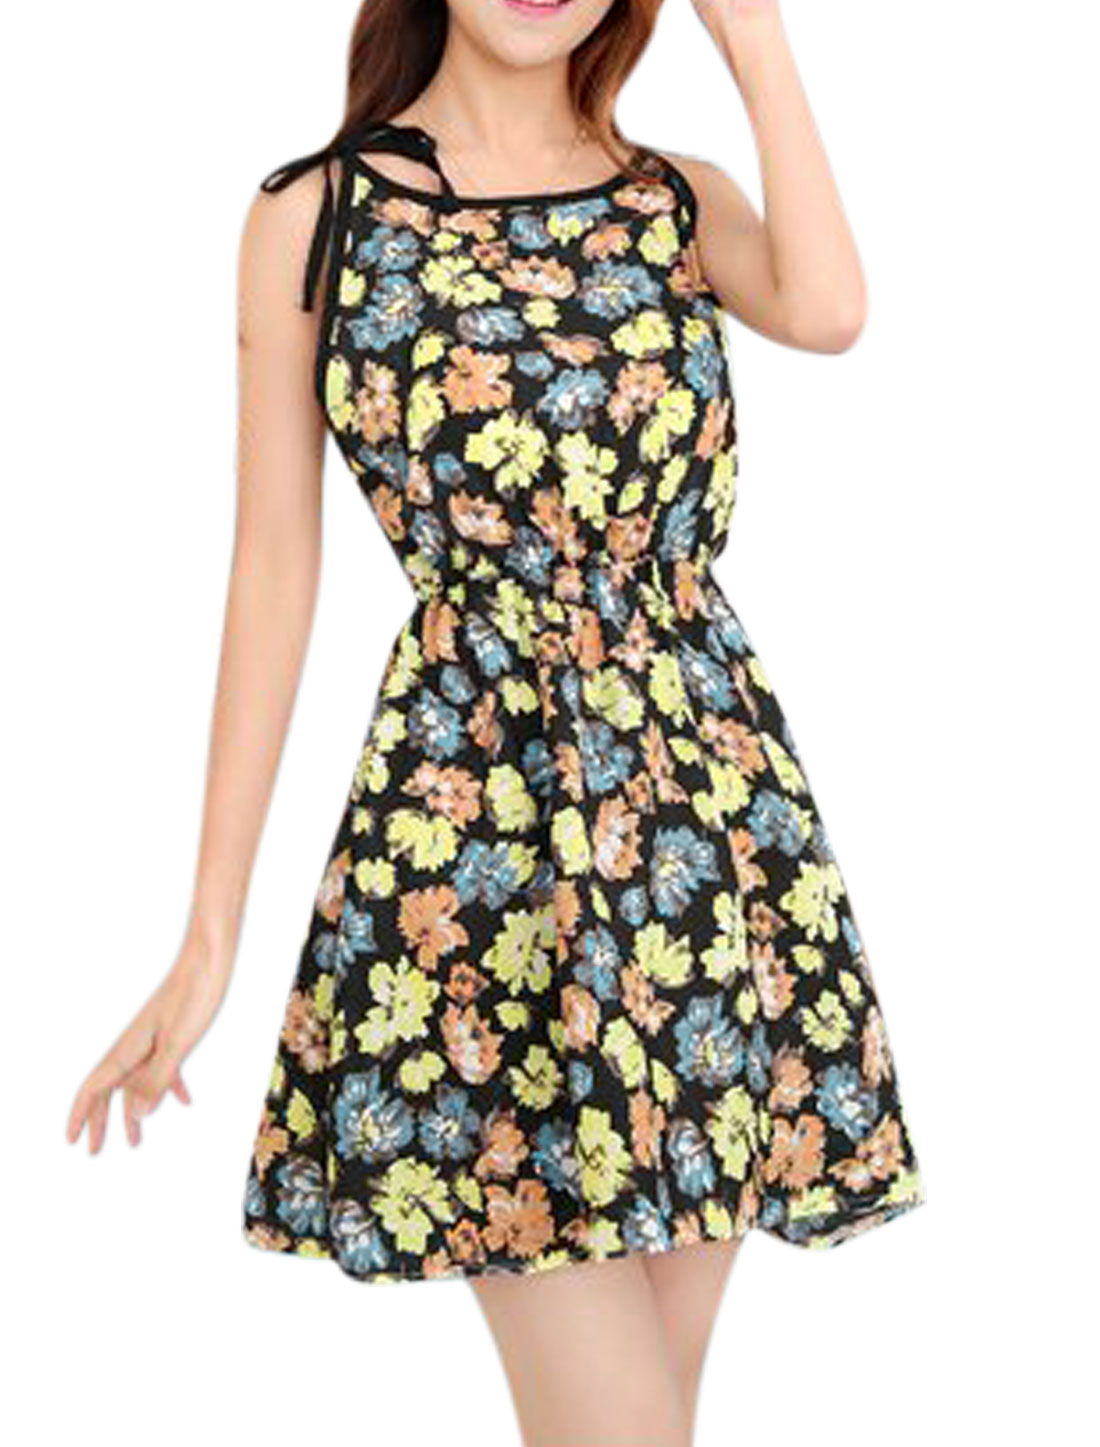 Women Self Tie Straps Flower Prints Sleeveless Elastic Waist Dress Black XS